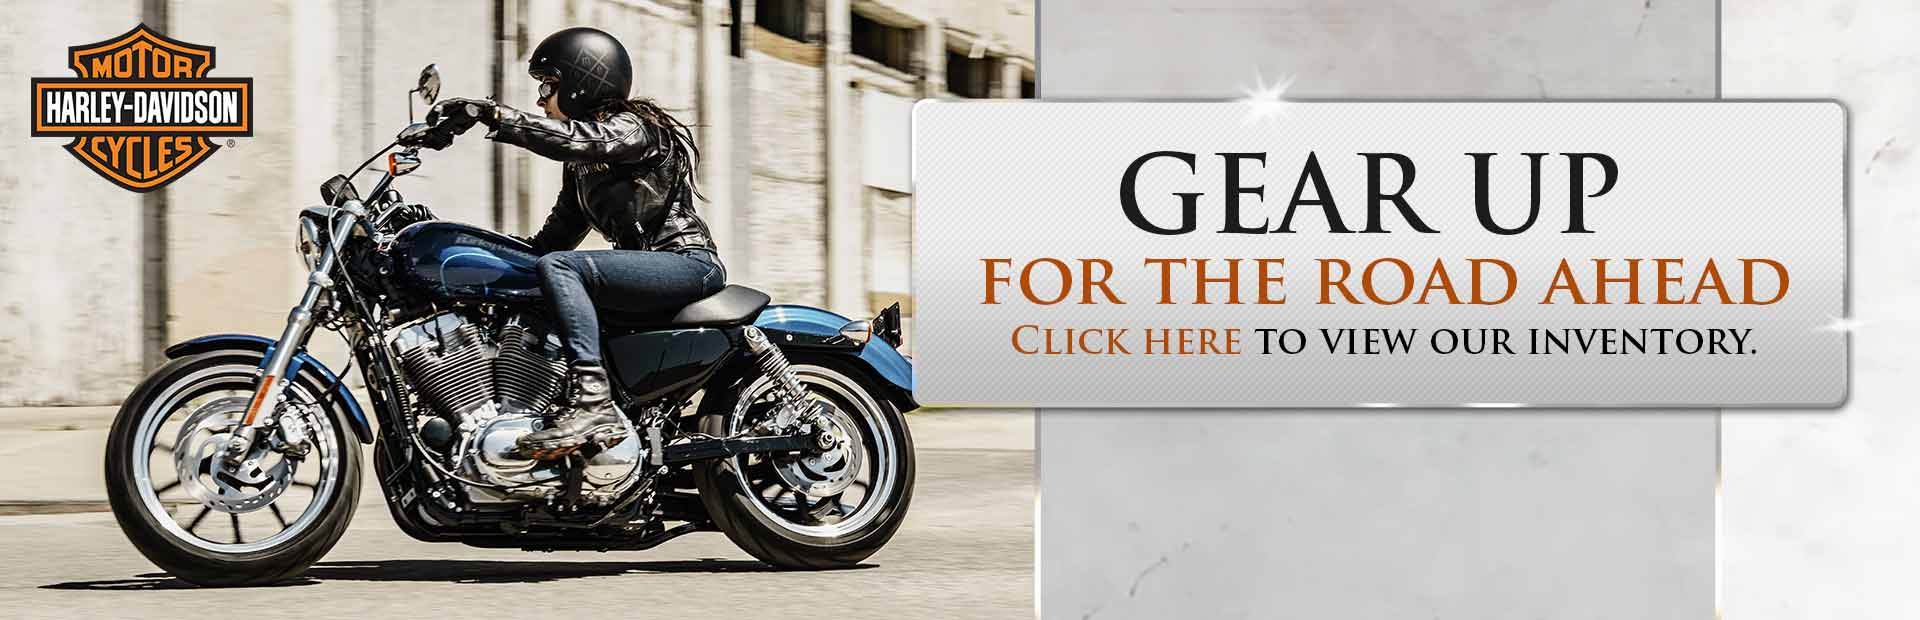 Gear up for the road ahead! Click here to view our Harley-Davidson® inventory.